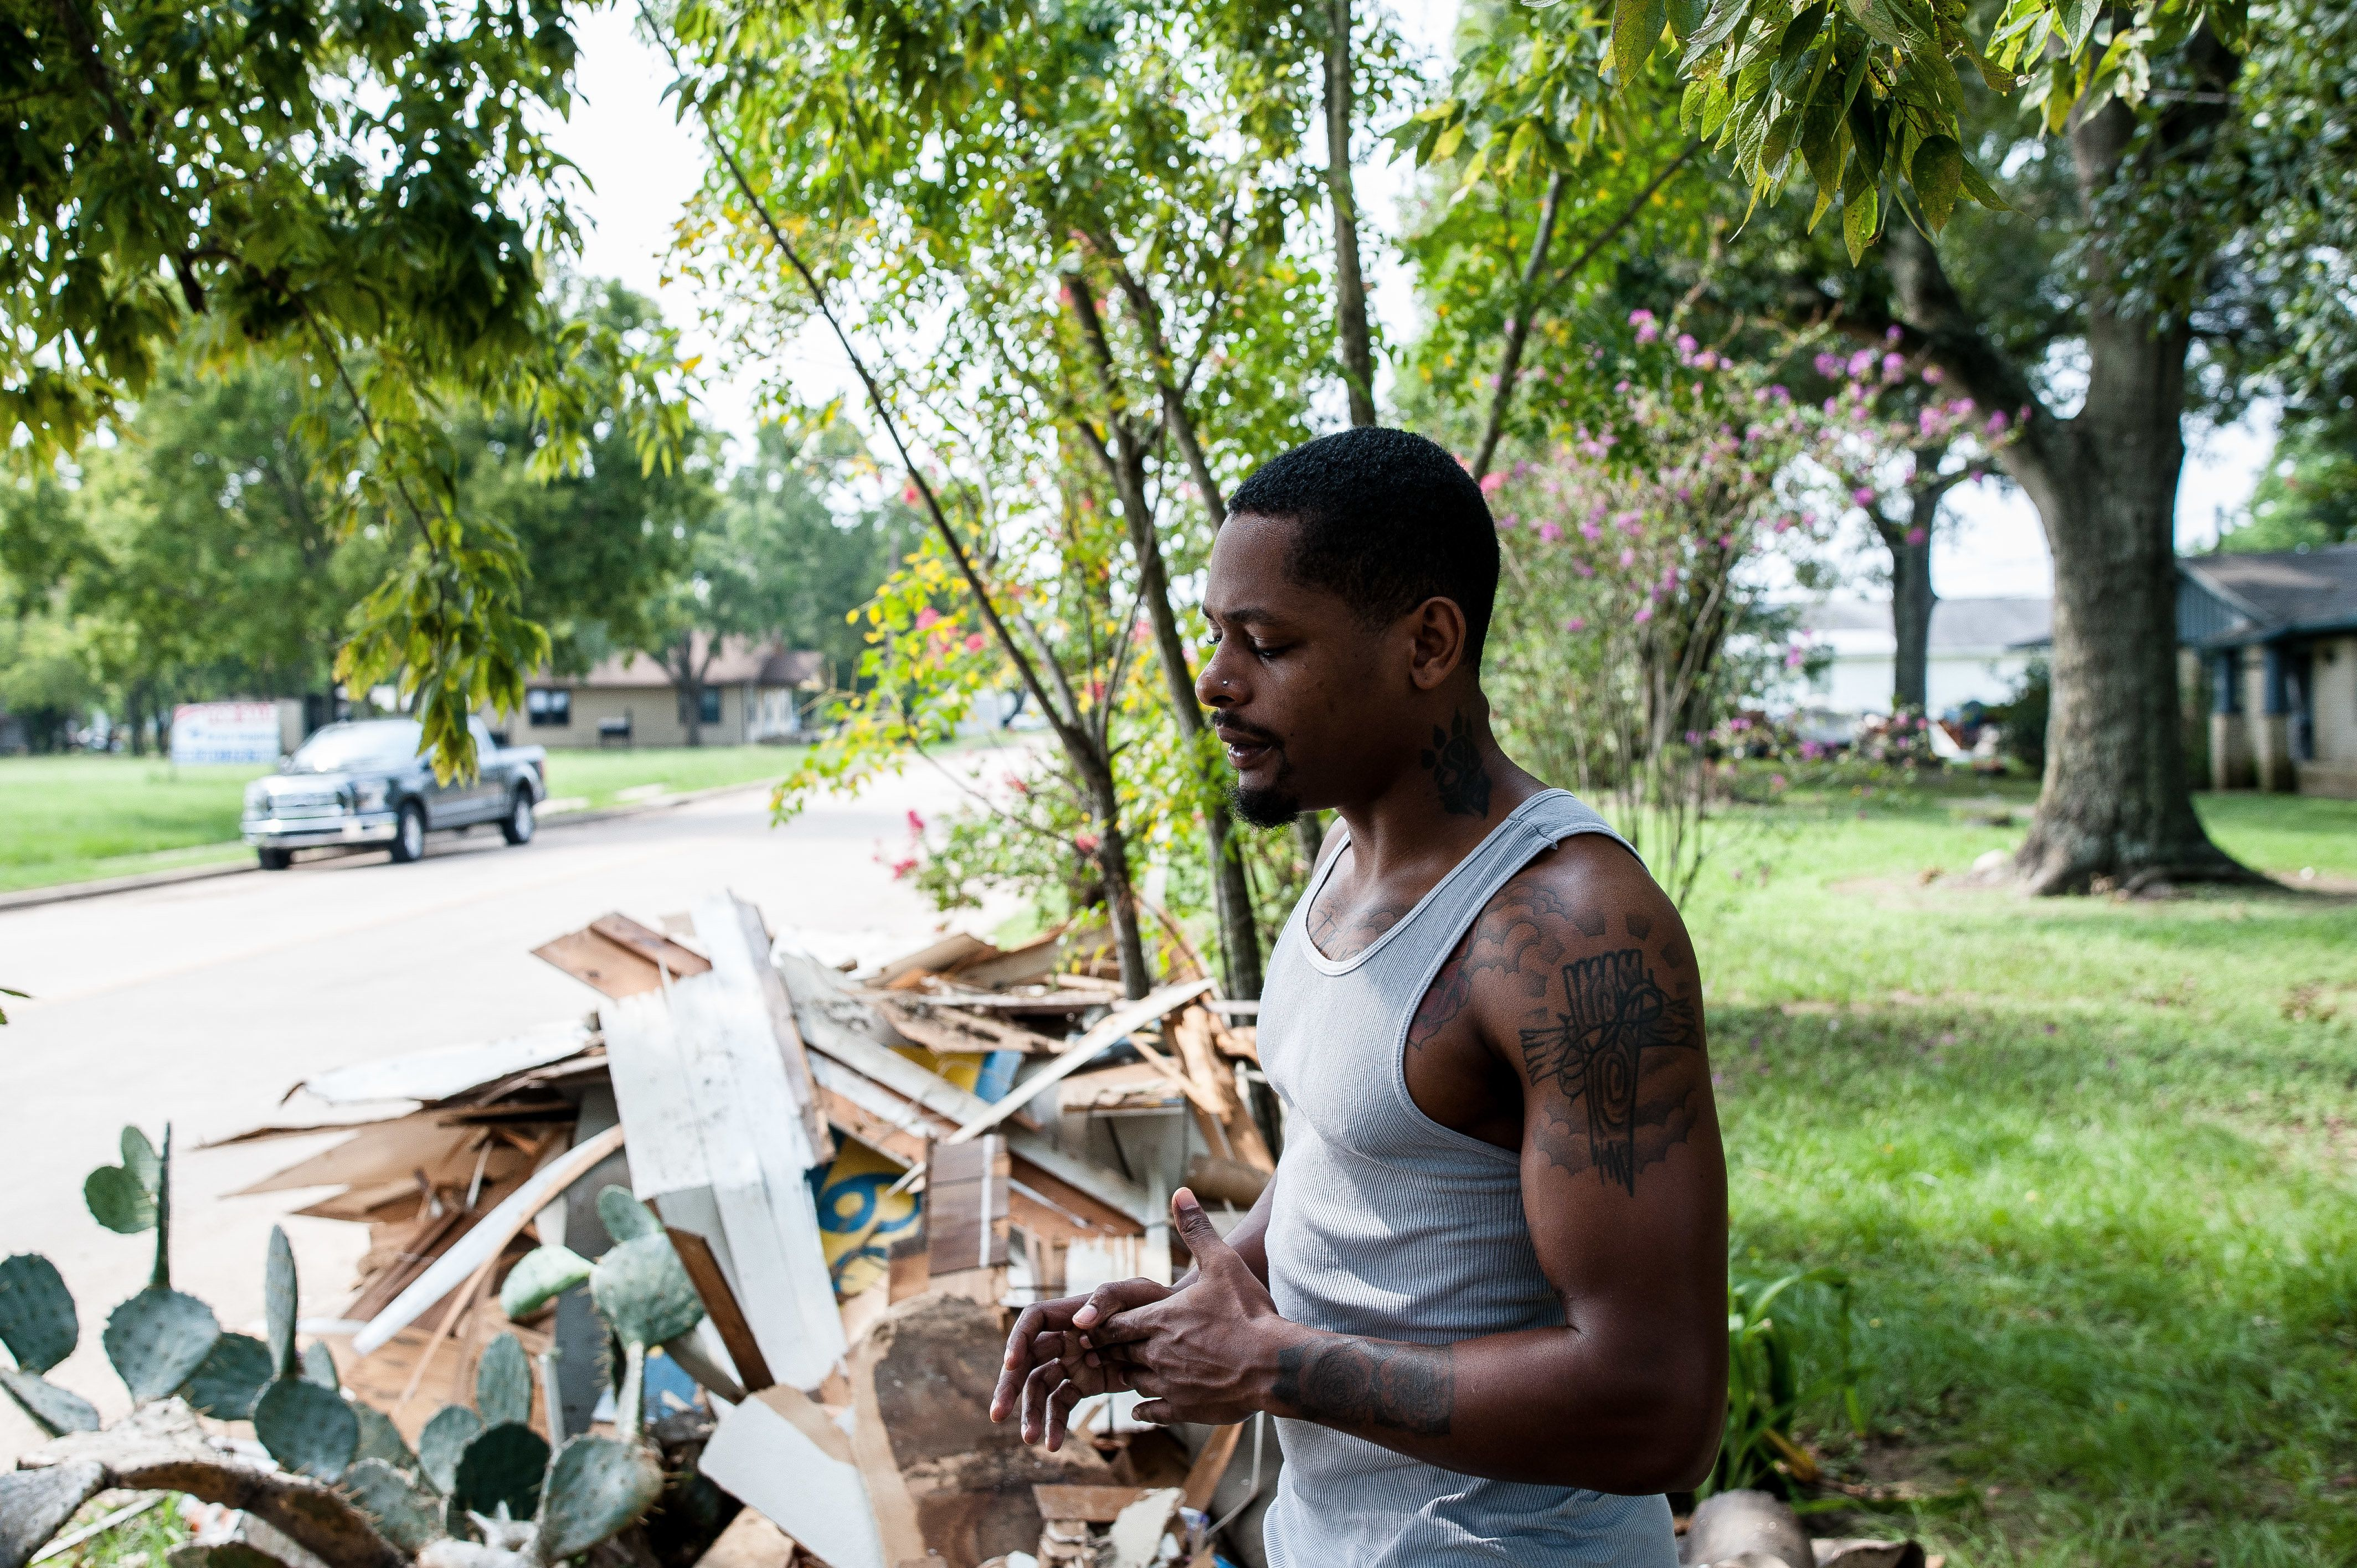 Damion Lasker, 24, stands next to debris on Sunday taken from his mother's flooded home in Katy, Texas, west of Houston. Hous